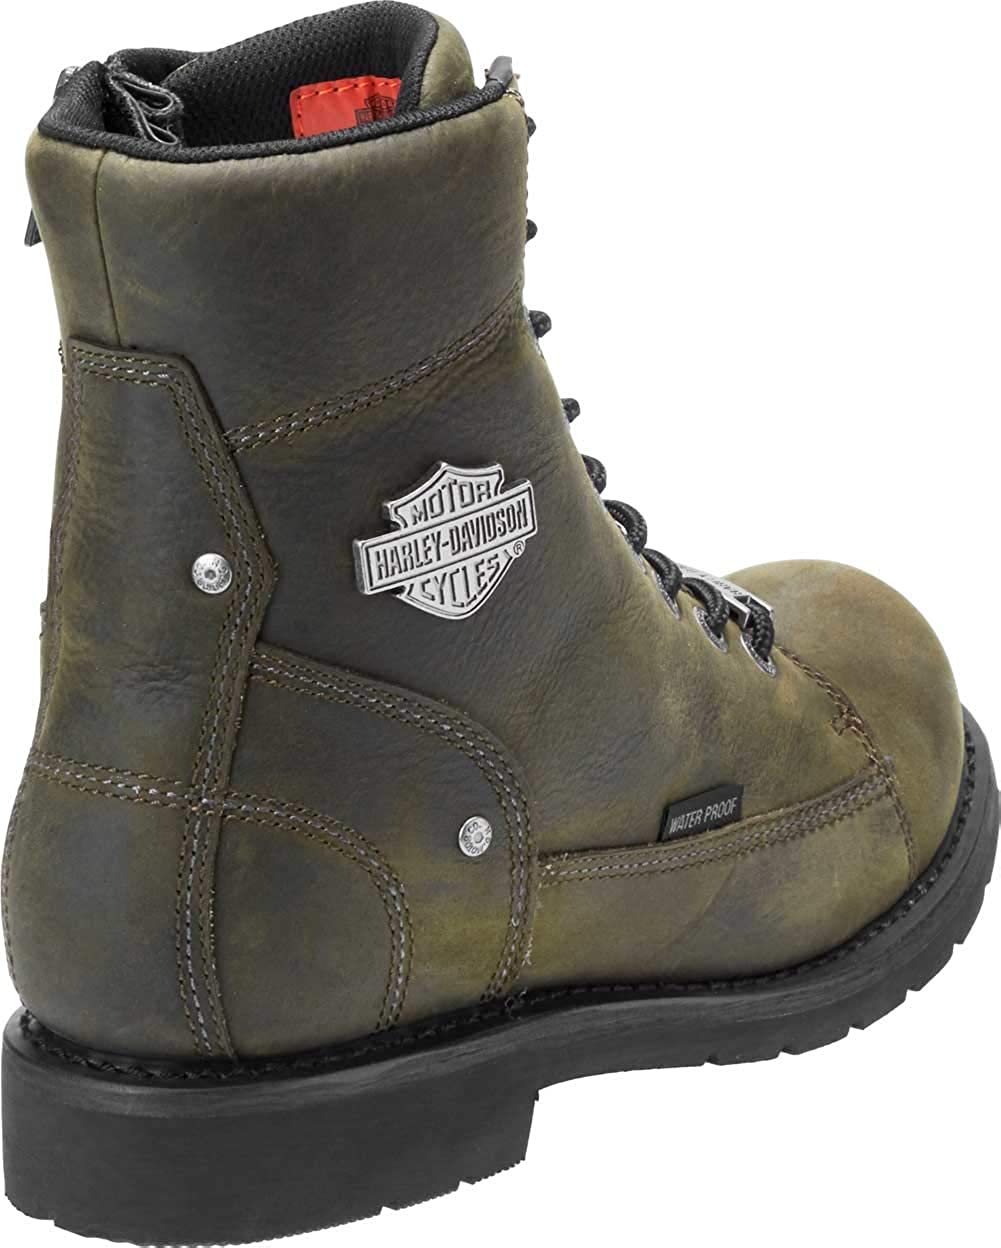 Harley-Davidson Men/'s Carrington 5.25-Inch Waterproof Motorcycle Boots D96194